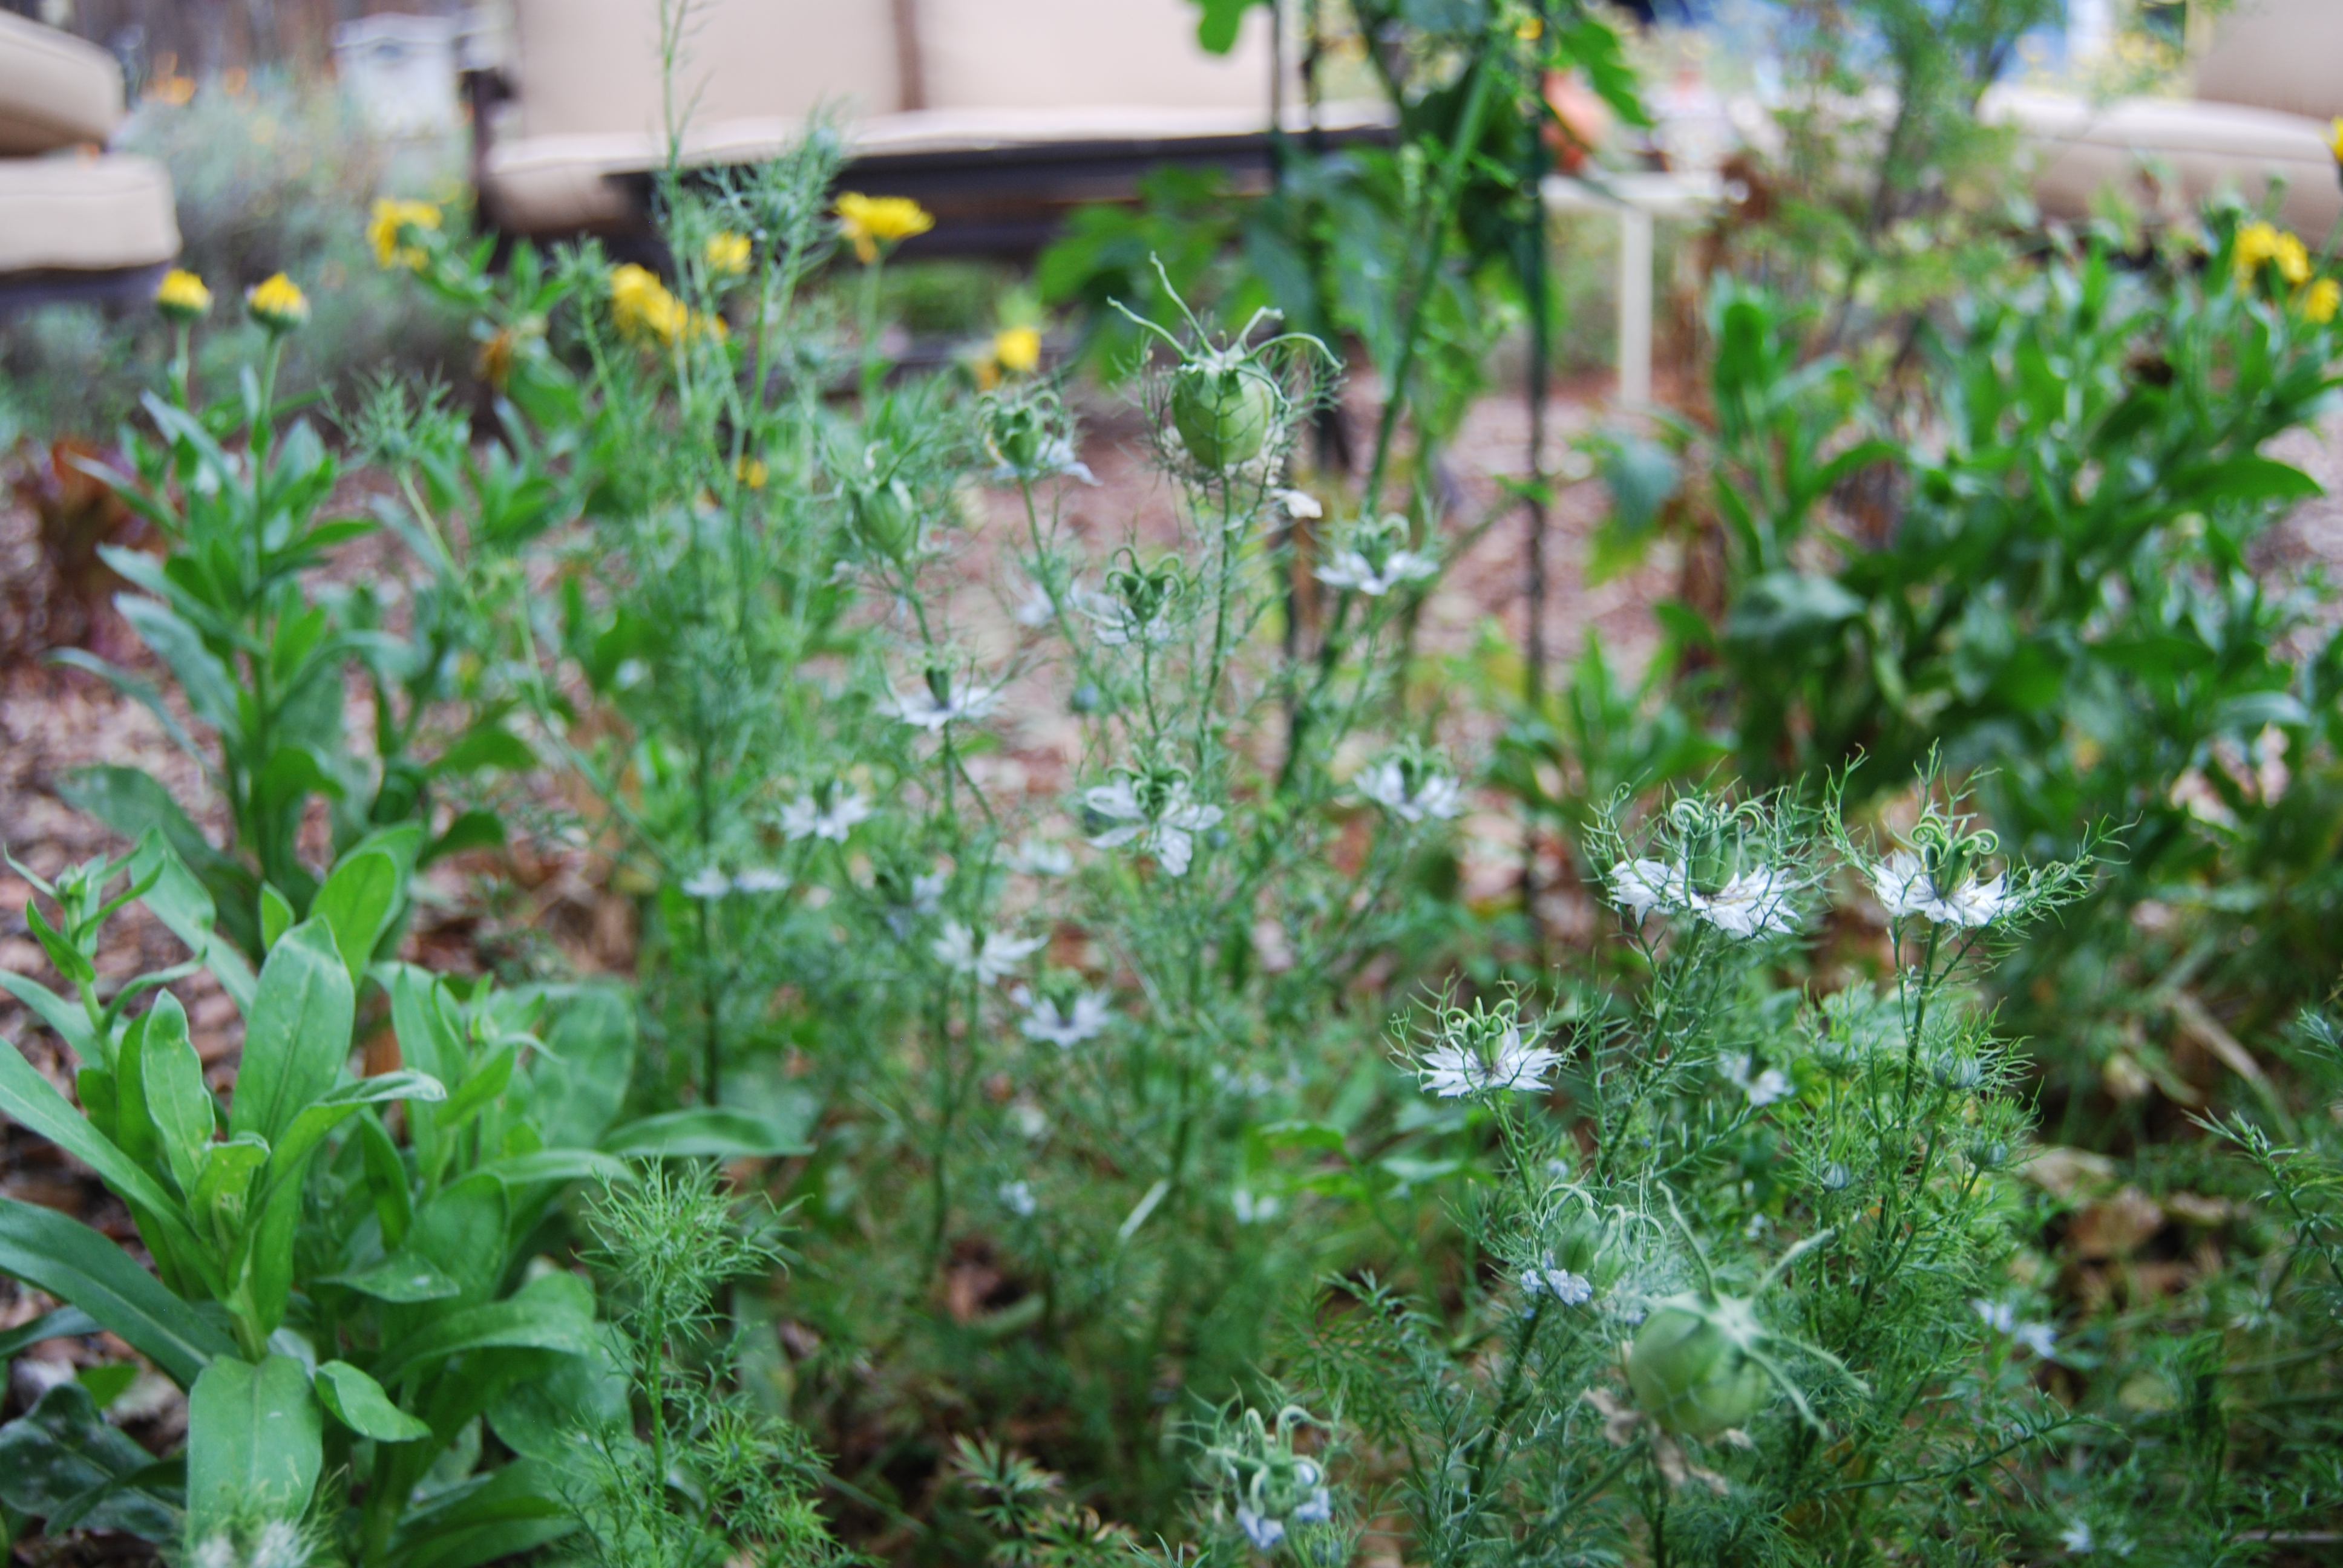 Volunteer Love-in-a-Mist, Calendula and other beneficials (even a tomato!) decorate the garden and provide pollen and nectar for insects.